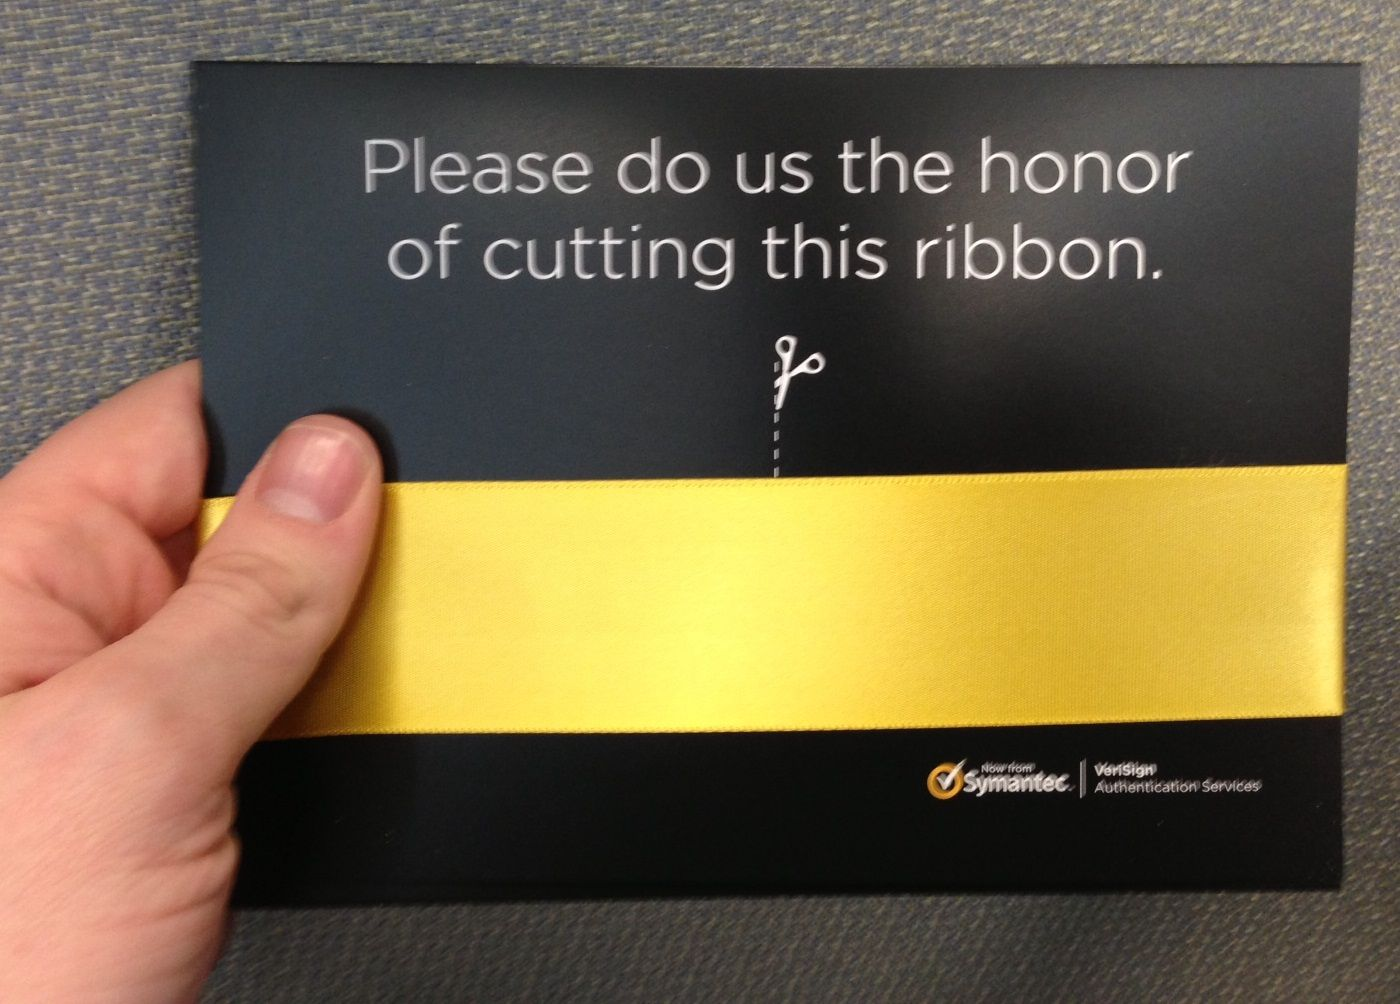 Symantec Invites You To A Ribbon Cutting Ceremony Ribbon Cutting